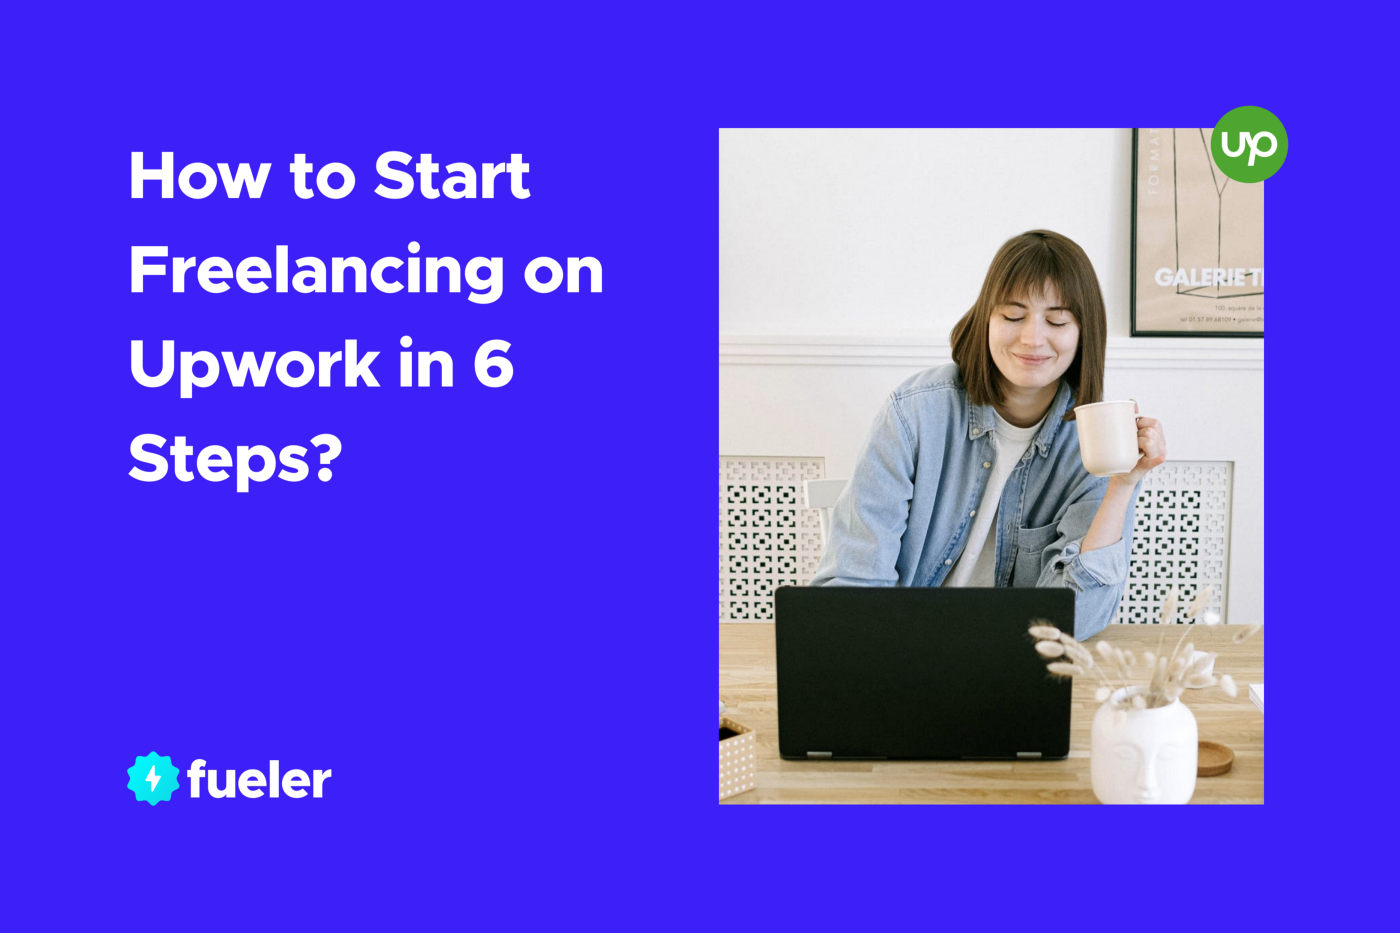 How to Start Freelancing on Upwork in 6 Steps? | fueler.io